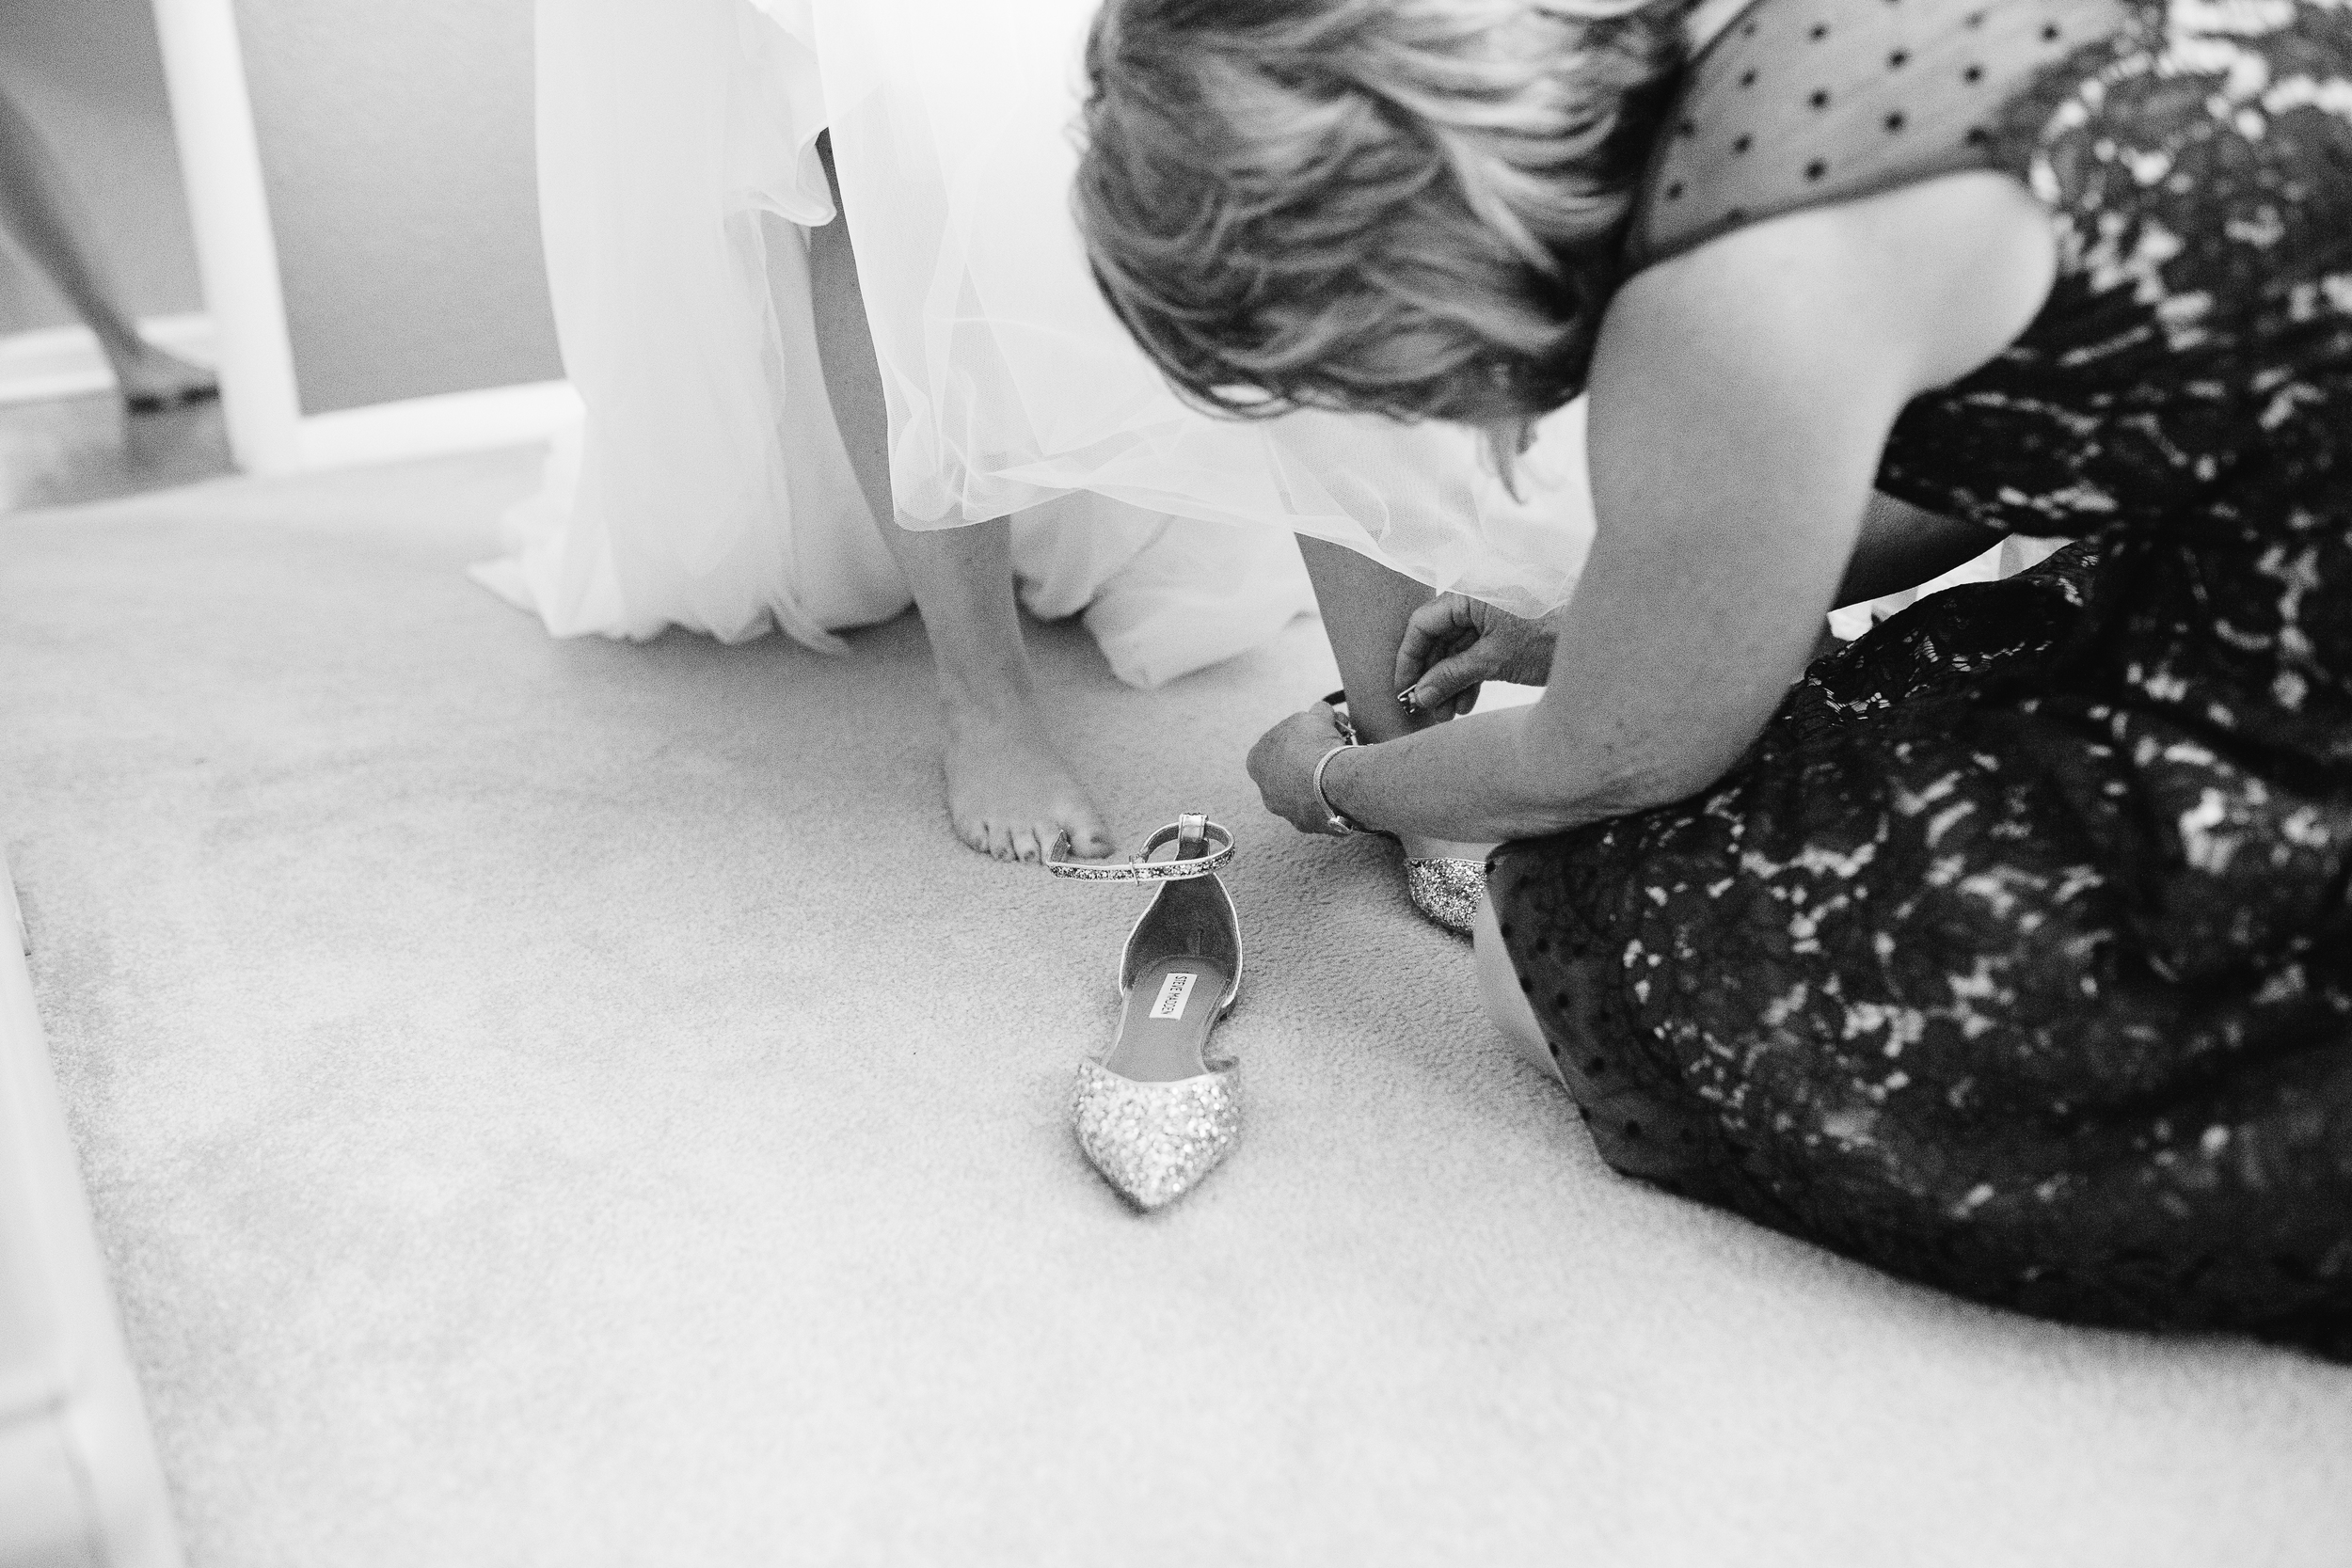 Coohills Wedding Photographer - putting on wedding flats